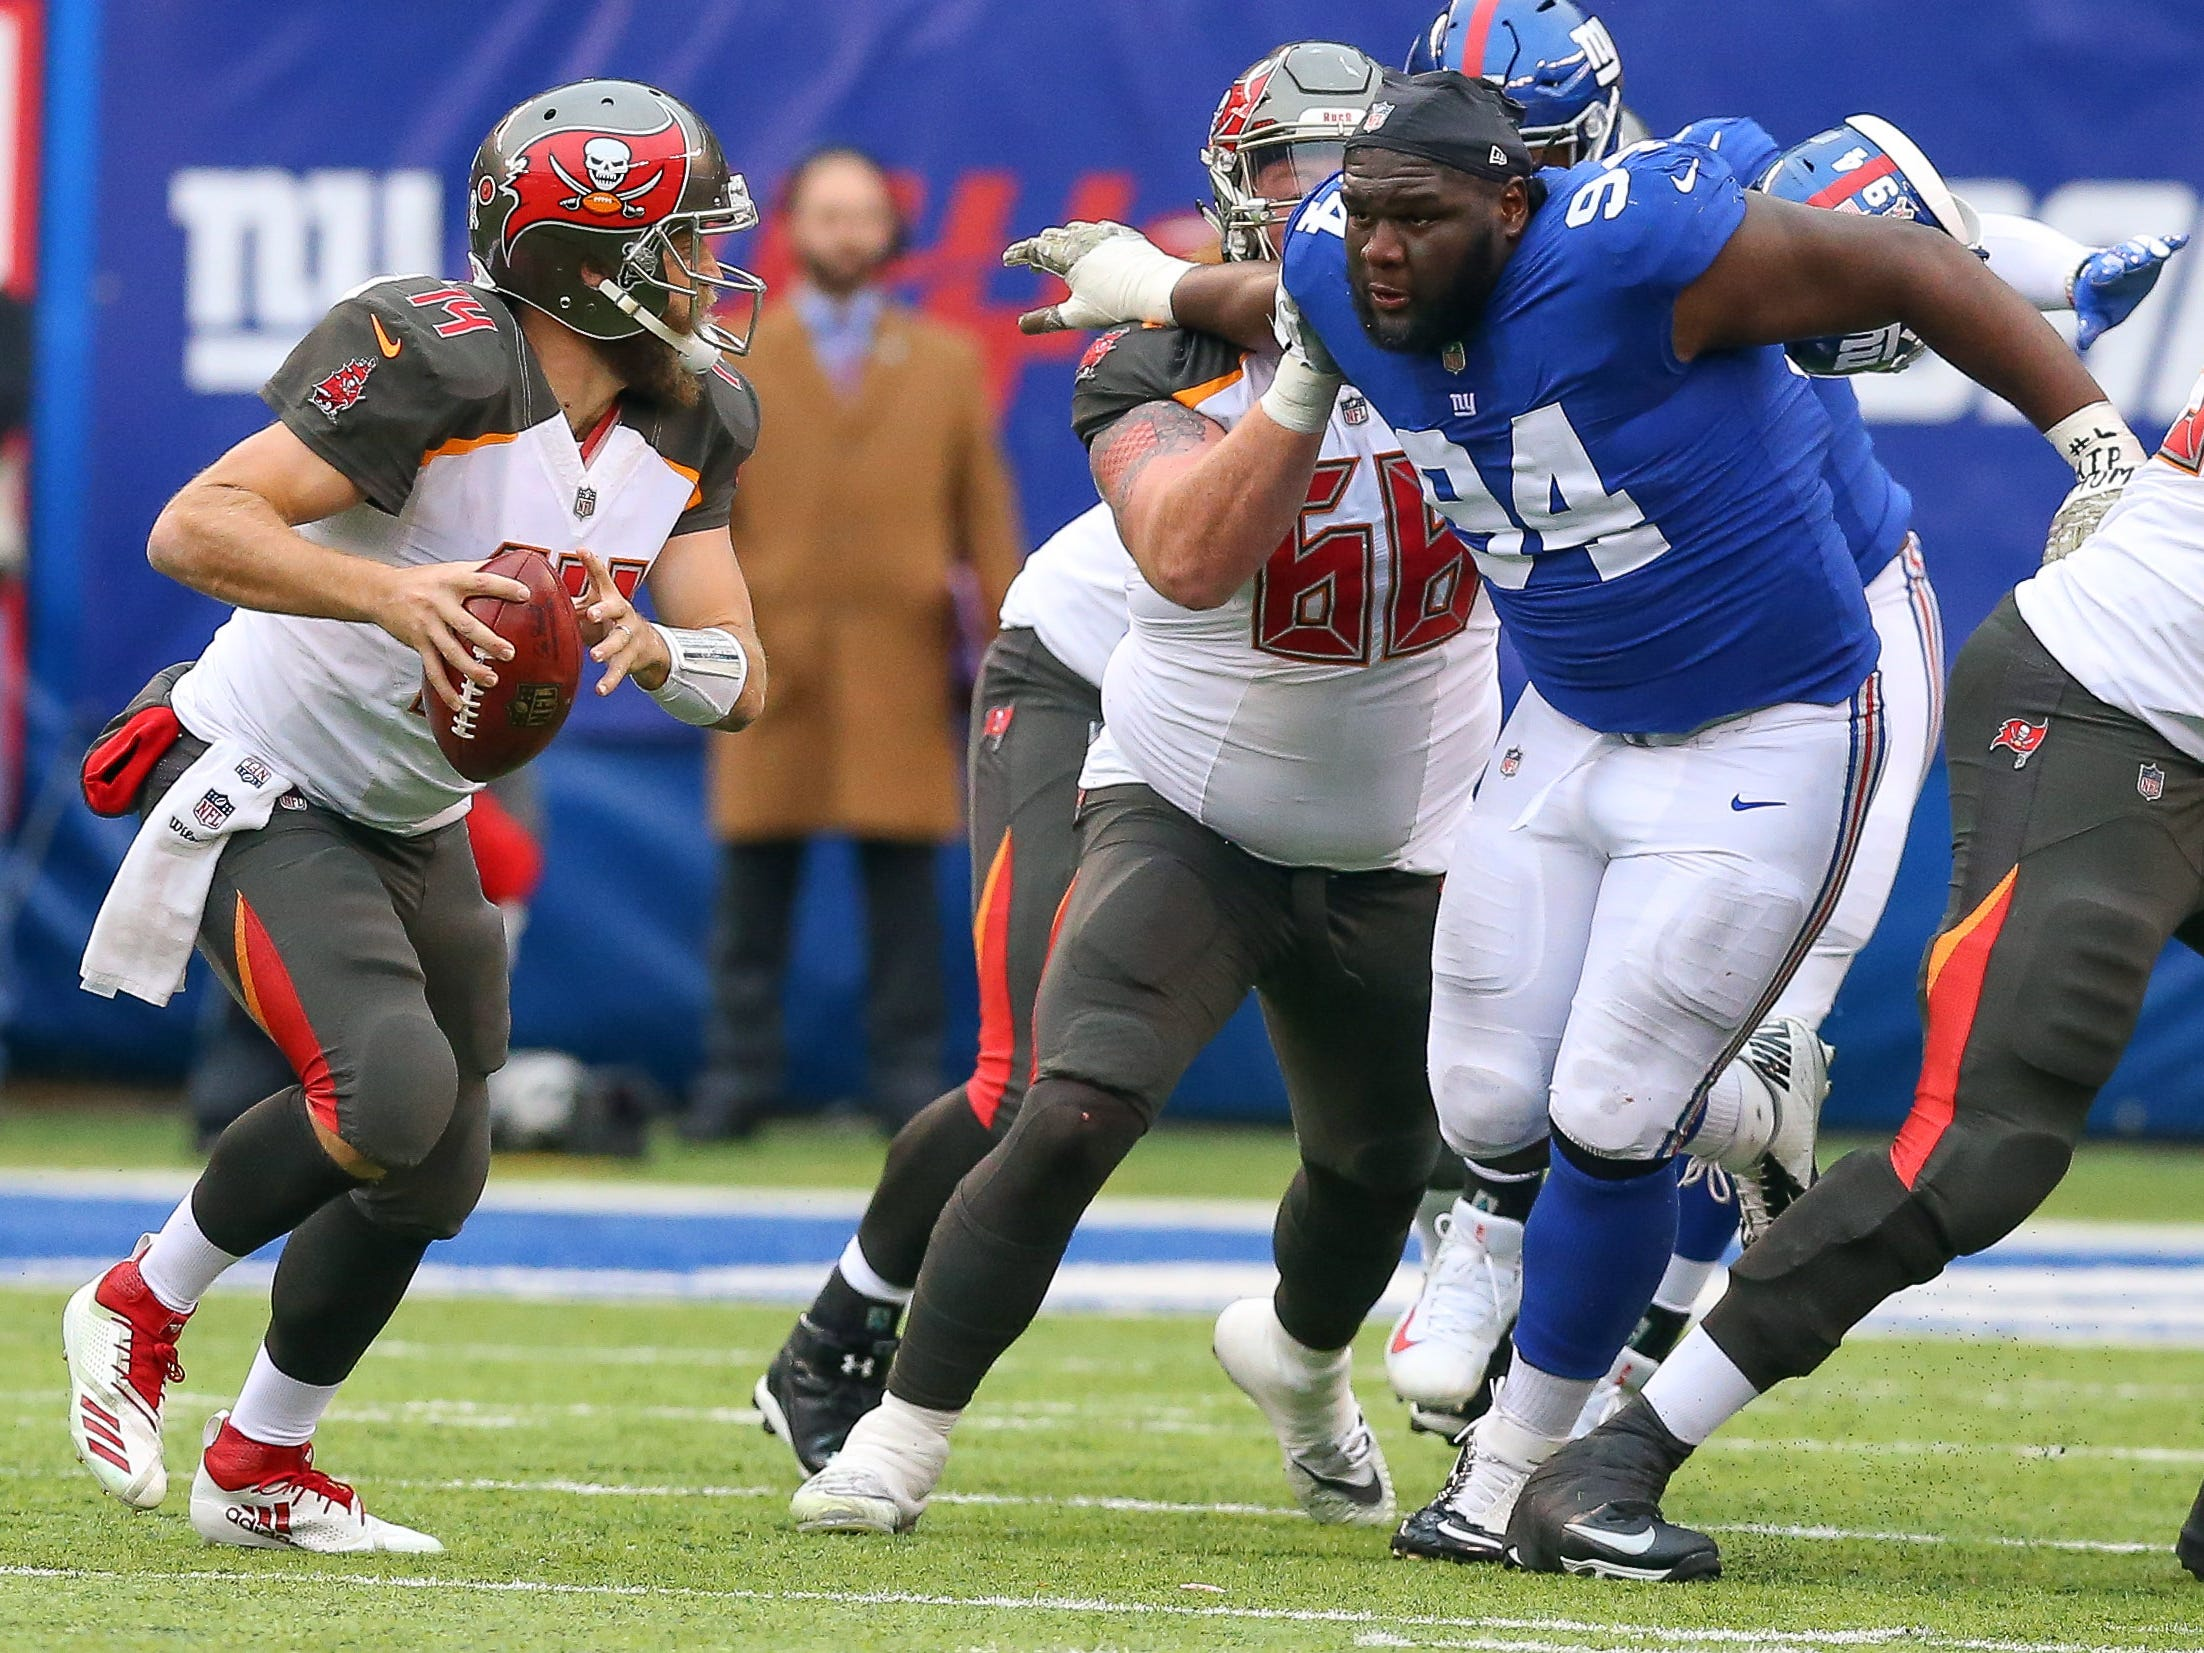 Week 11: Tampa Bay Buccaneers quarterback Ryan Fitzpatrick is pursued by New York Giants defensive end Dalvin Tomlinson during the first half at MetLife Stadium. The Giants won the game, 38-35.